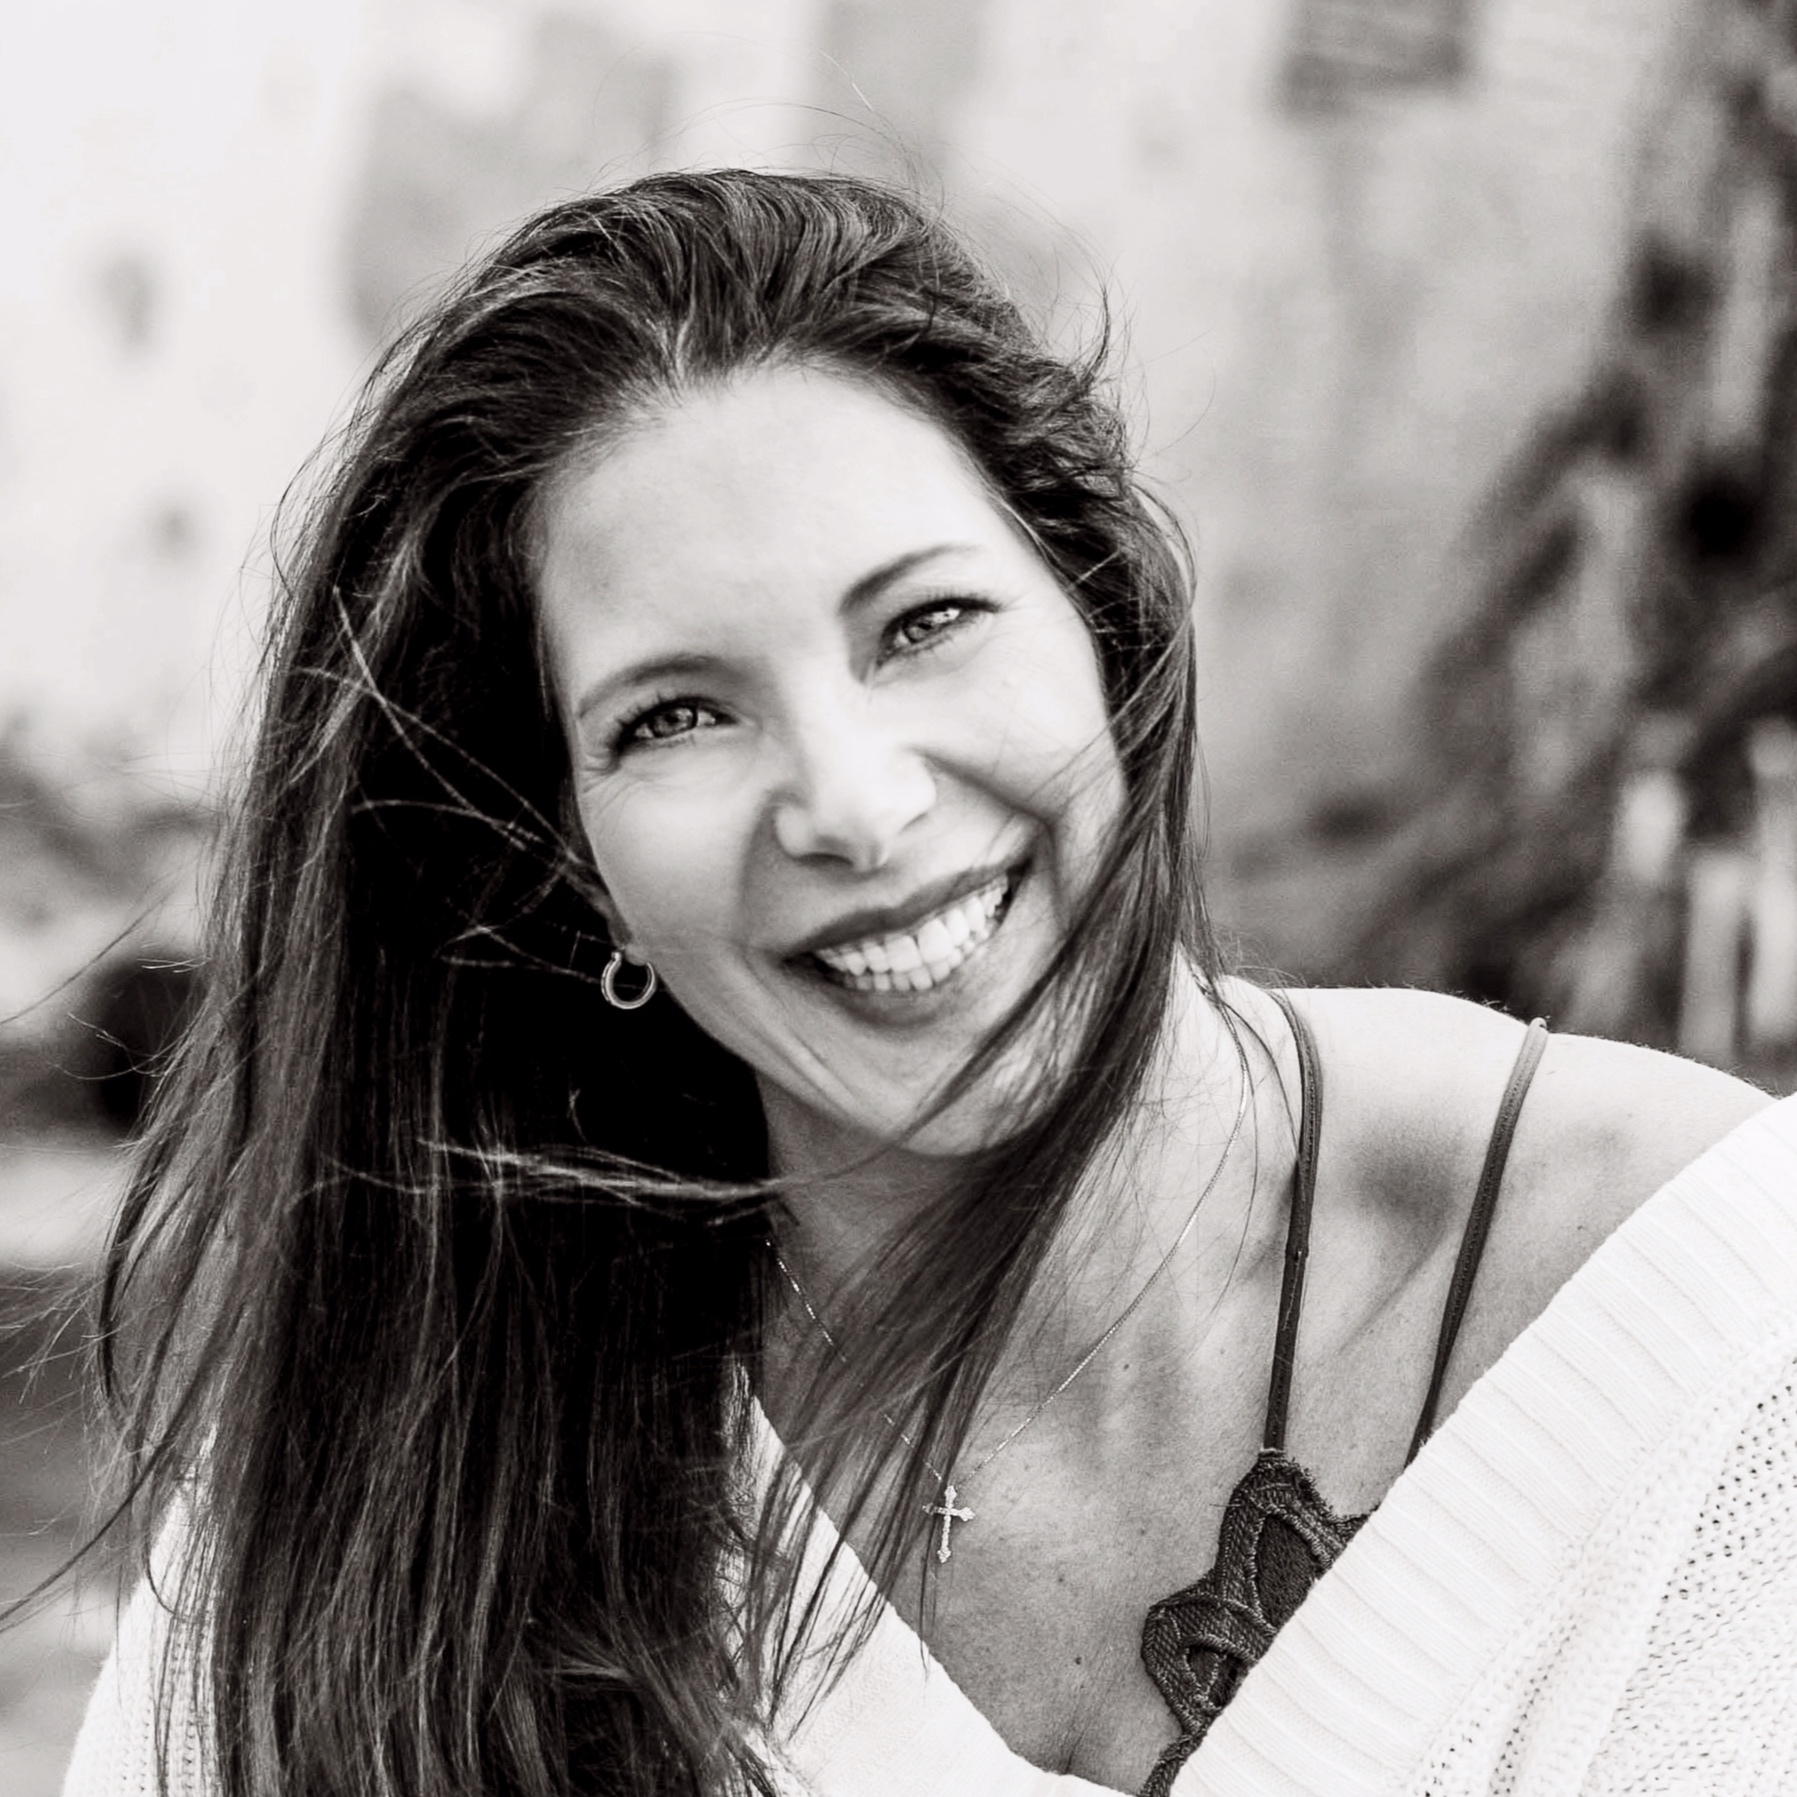 JANELLE DEWOLF - Janelle is the owner of Studio 116 Photography and The DeWolf Co.She specializes in Personal Branding photography and in January 2020 will be launching her Enneagram Coaching business with Mastermind, Workshop & Individual Coaching opportunities.